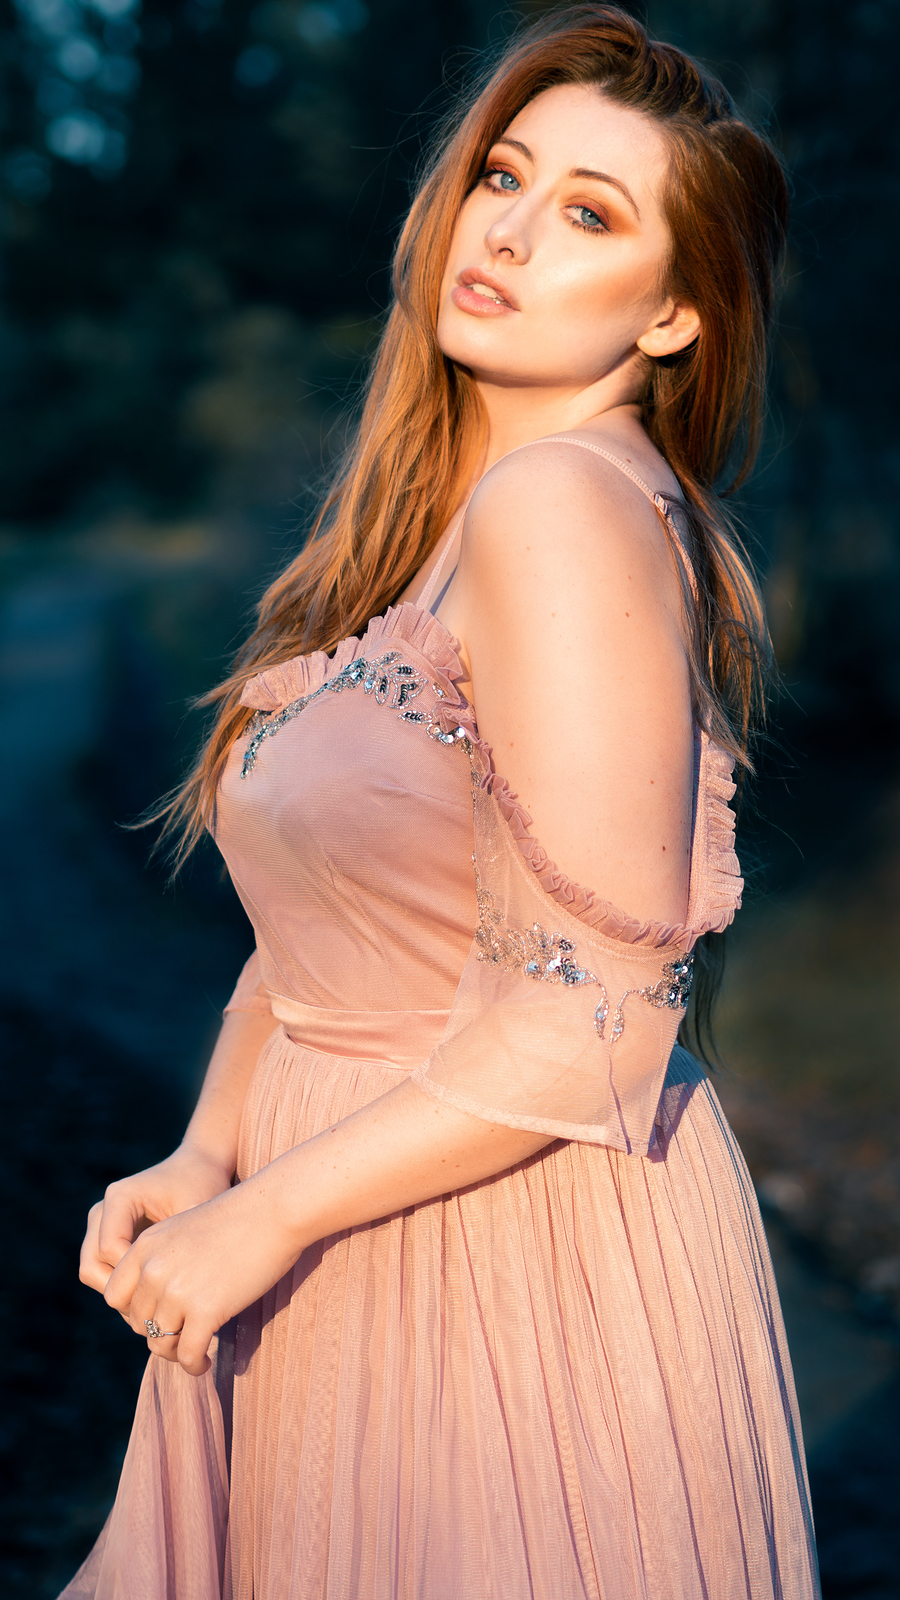 Golden Hour / Photography by Alis Volat Photography, Model Sinopa Rin, Post processing by Alis Volat Photography / Uploaded 3rd March 2019 @ 10:28 PM